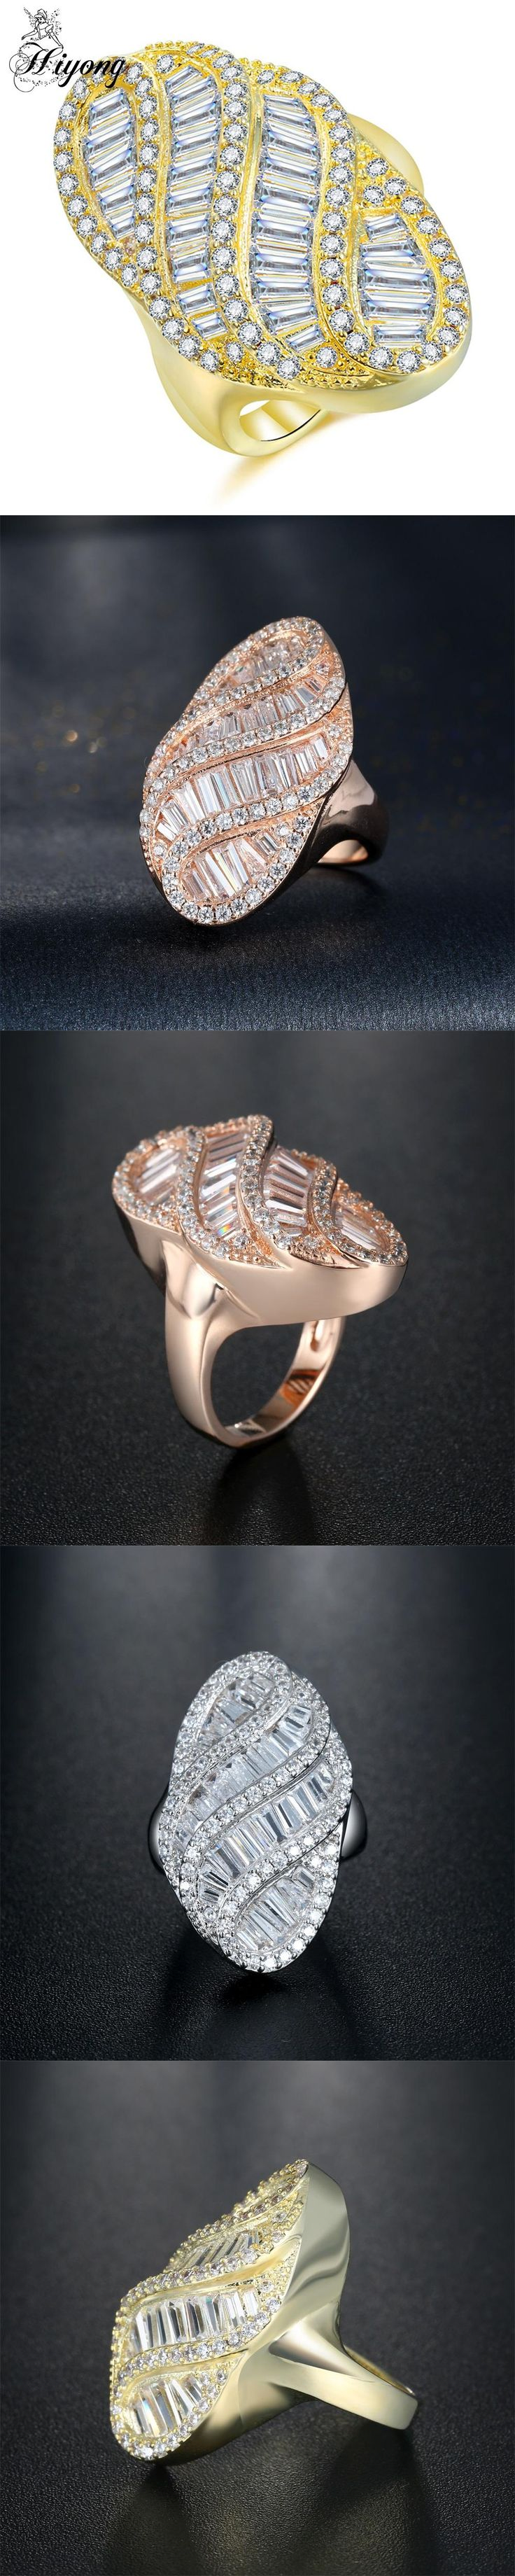 Oval Luxury Ring AAA CZ Three Color Choose Wide Surface Female Elegant Accessory Fashion Wedding Eternity Jewelry Anel Feminino